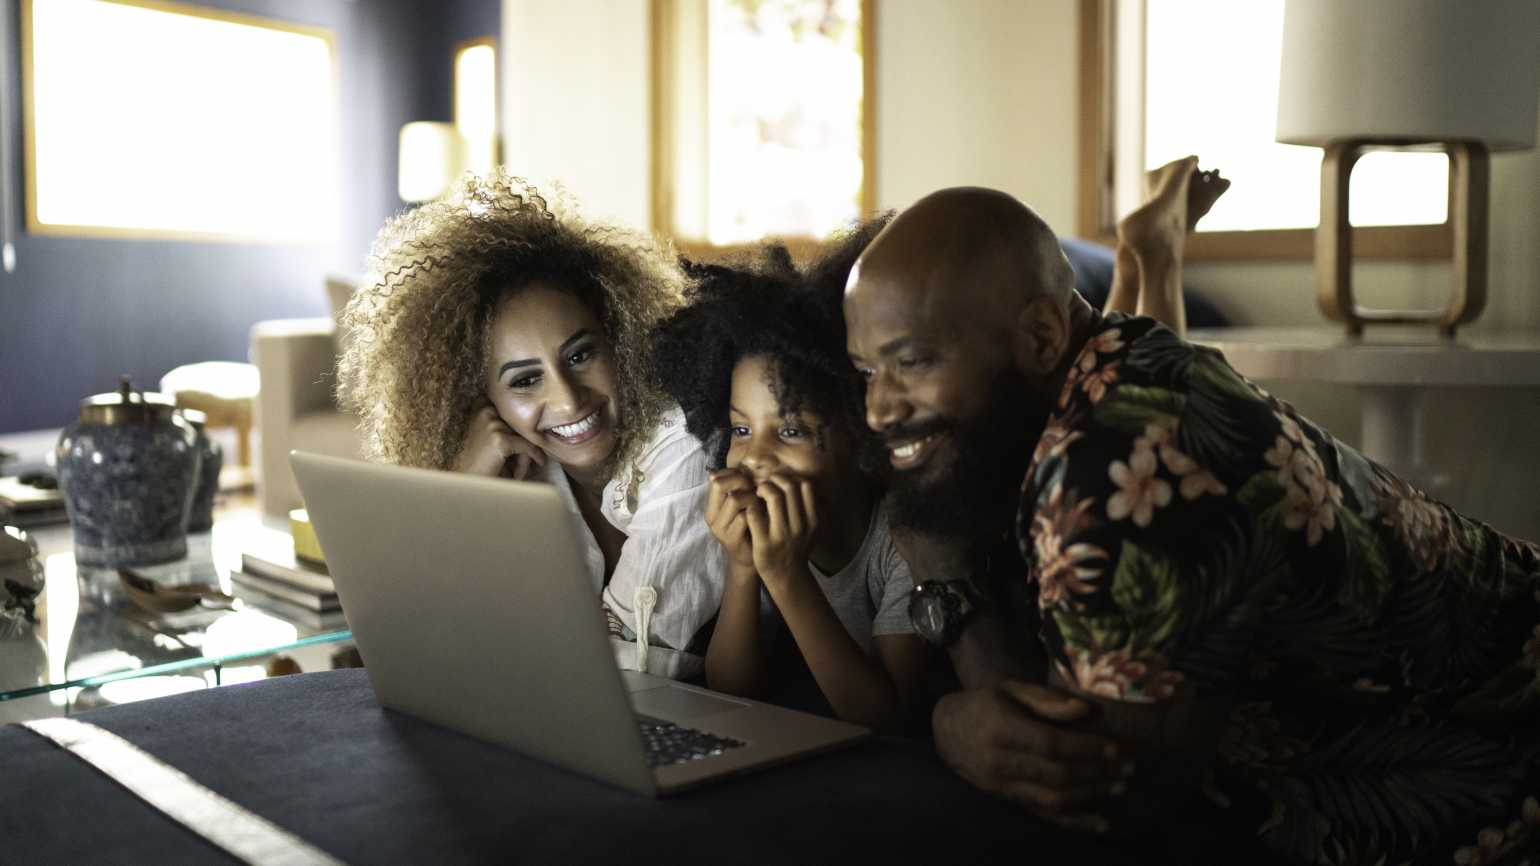 Family smiling at computer screen